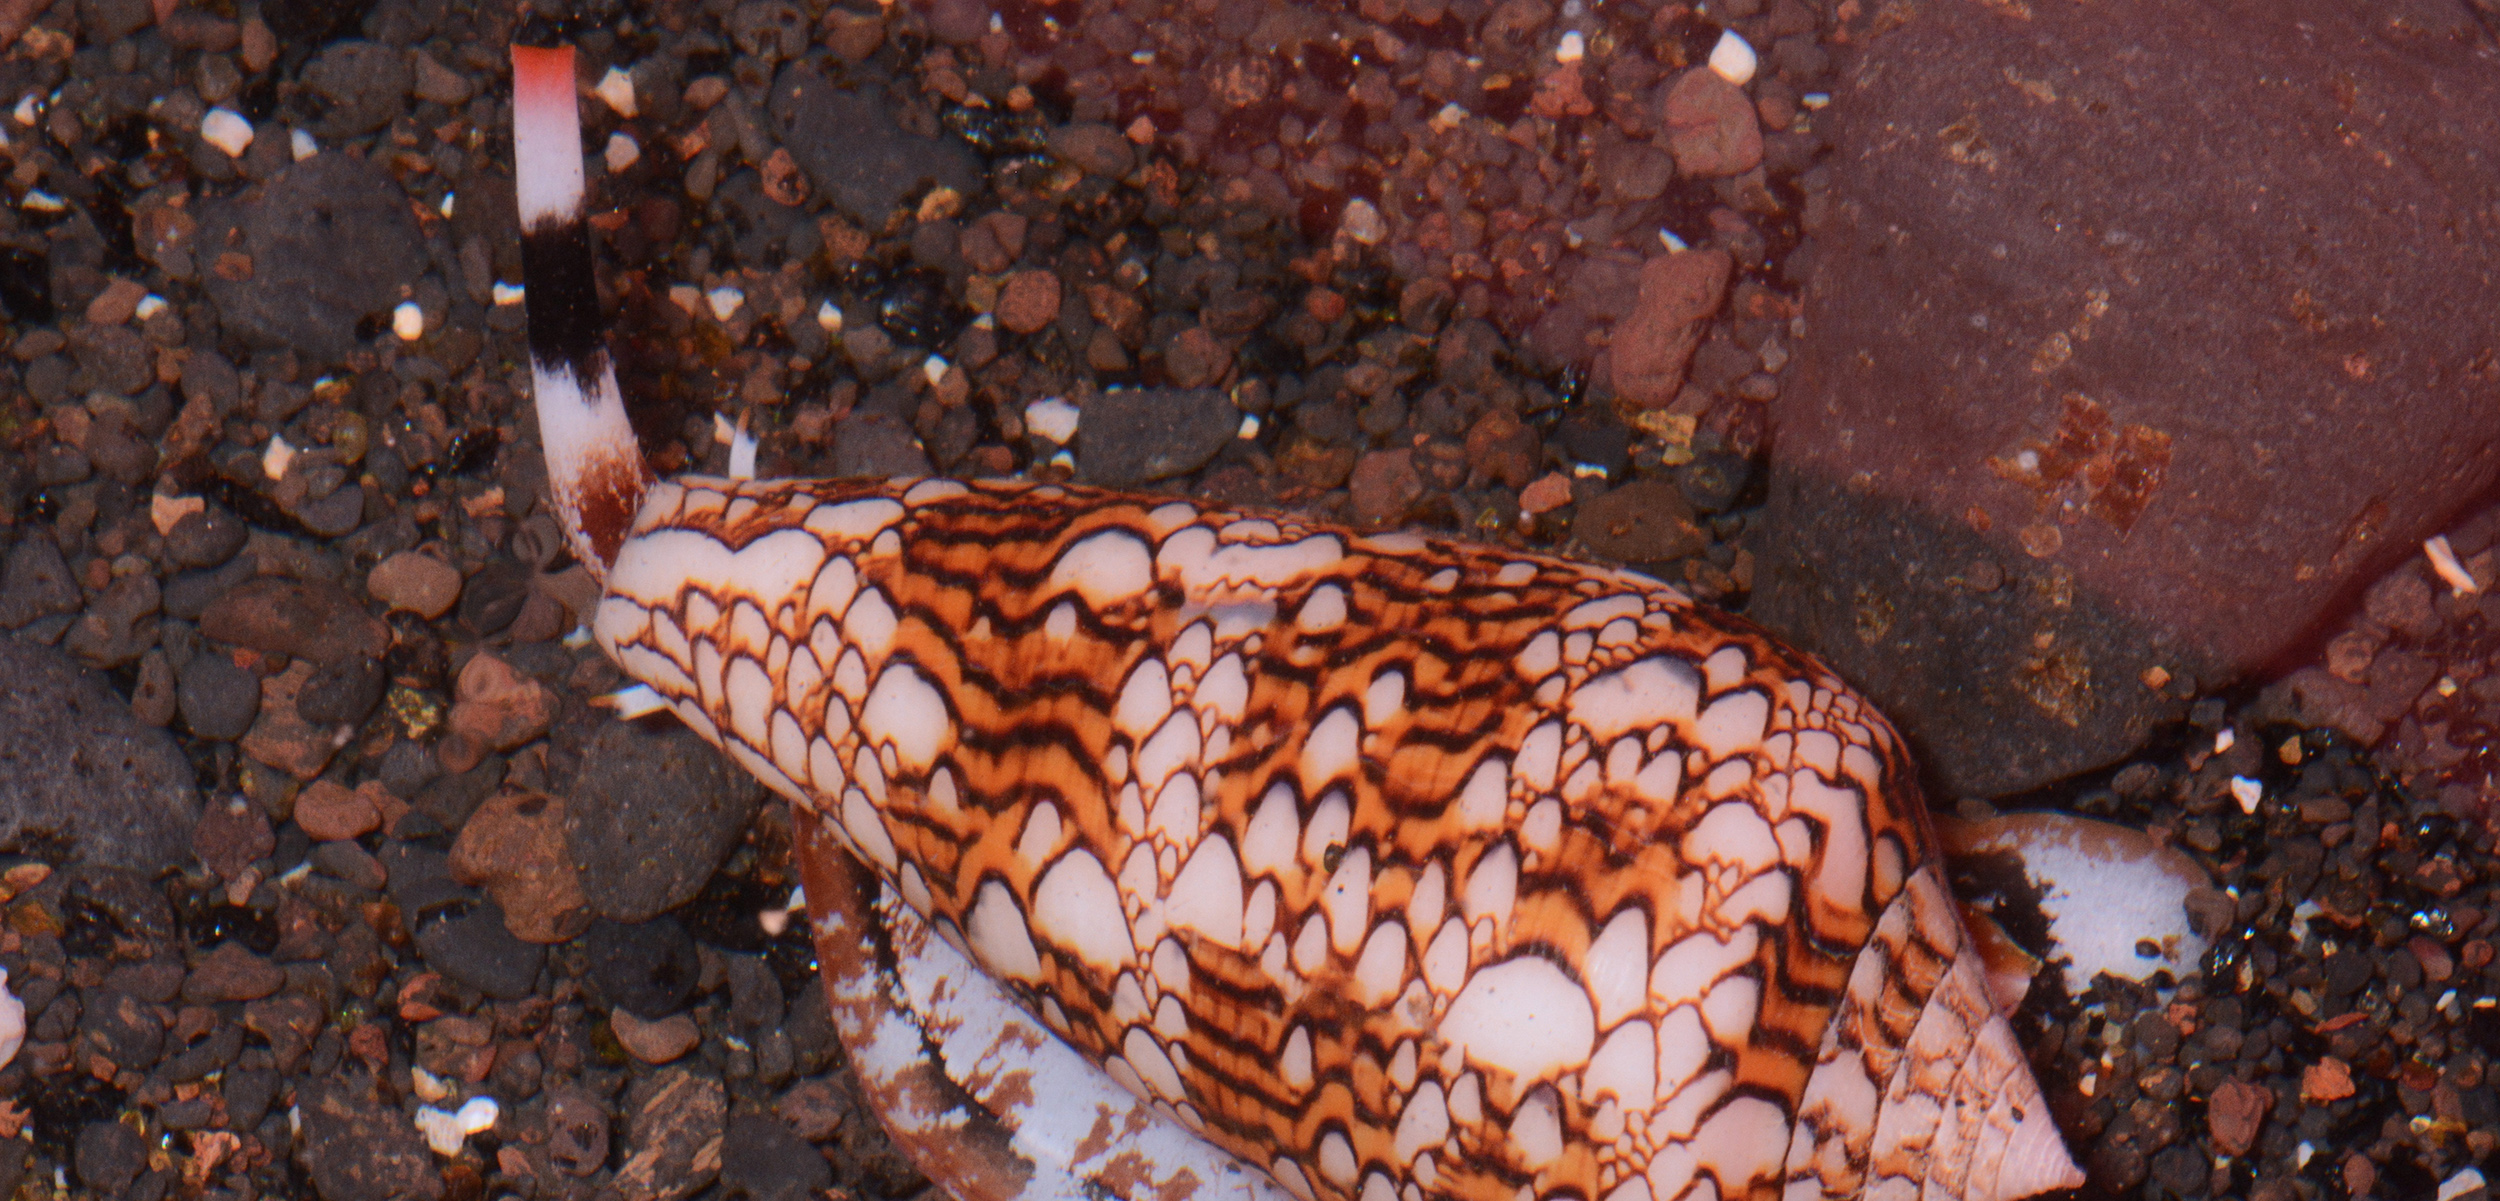 Cone snails such as the cobweb cone snail and the textile cone snail (pictured here) have become the darlings of biomedical research. Photo by David Massemin/Biosphoto/Corbis